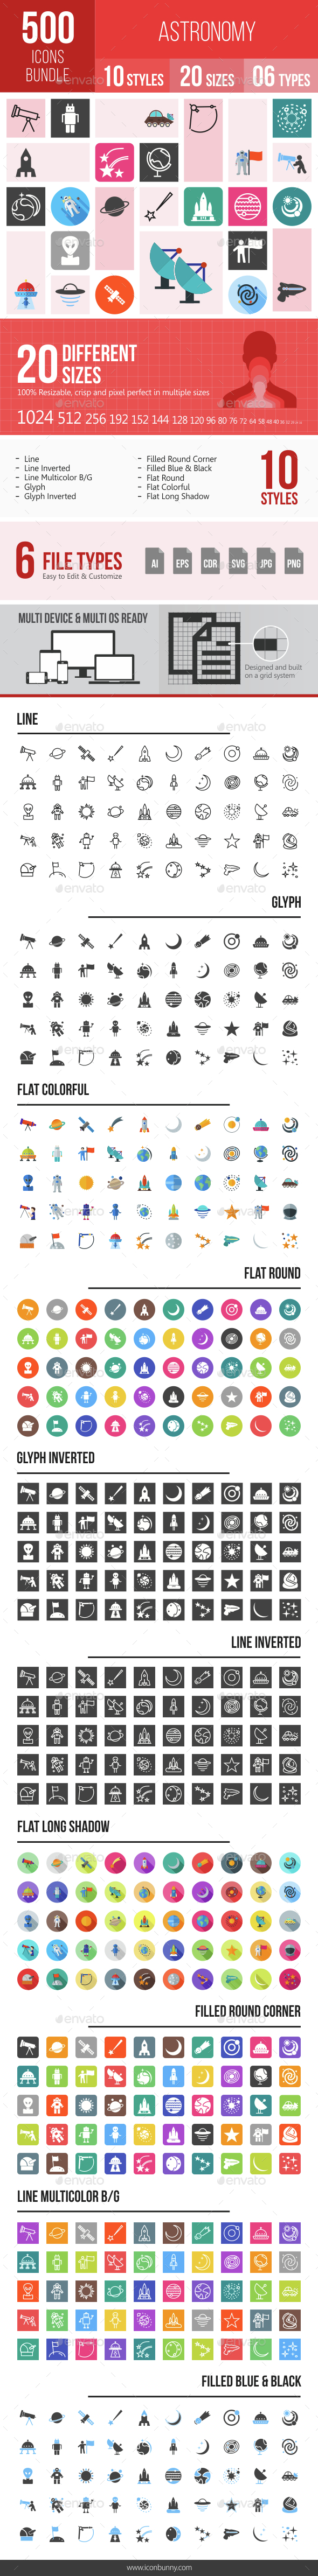 500 Astronomy Icons Bundle - Icons